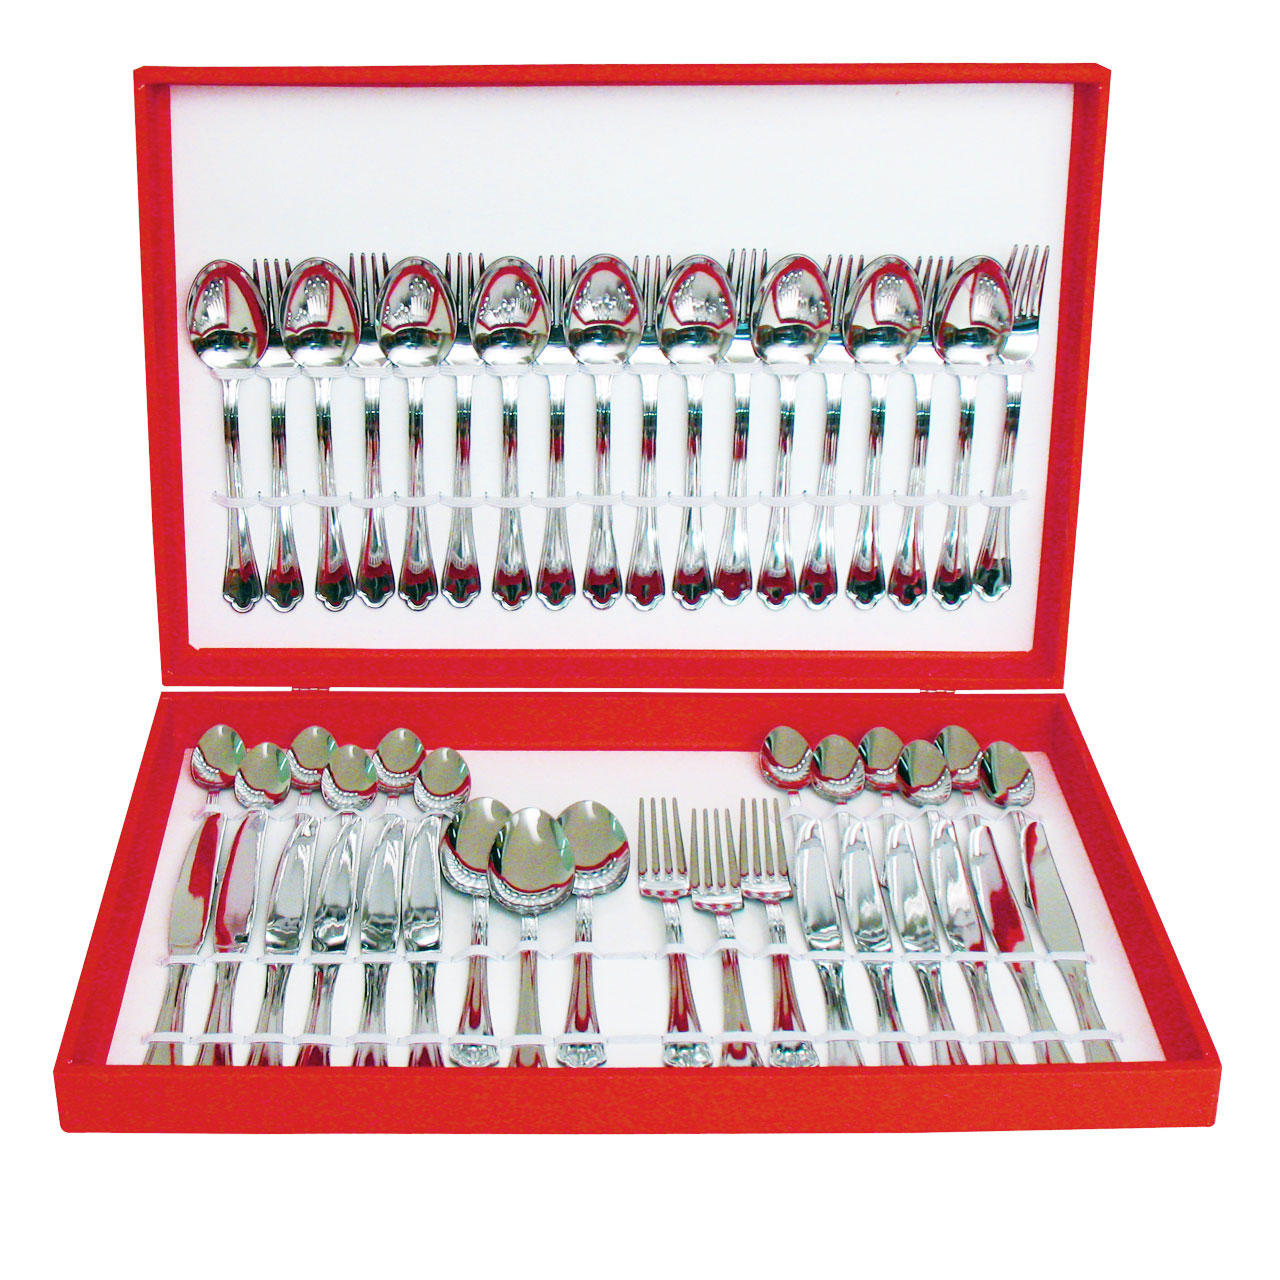 61600048 48 pcs. cutlery set pressed knife Wooden Box